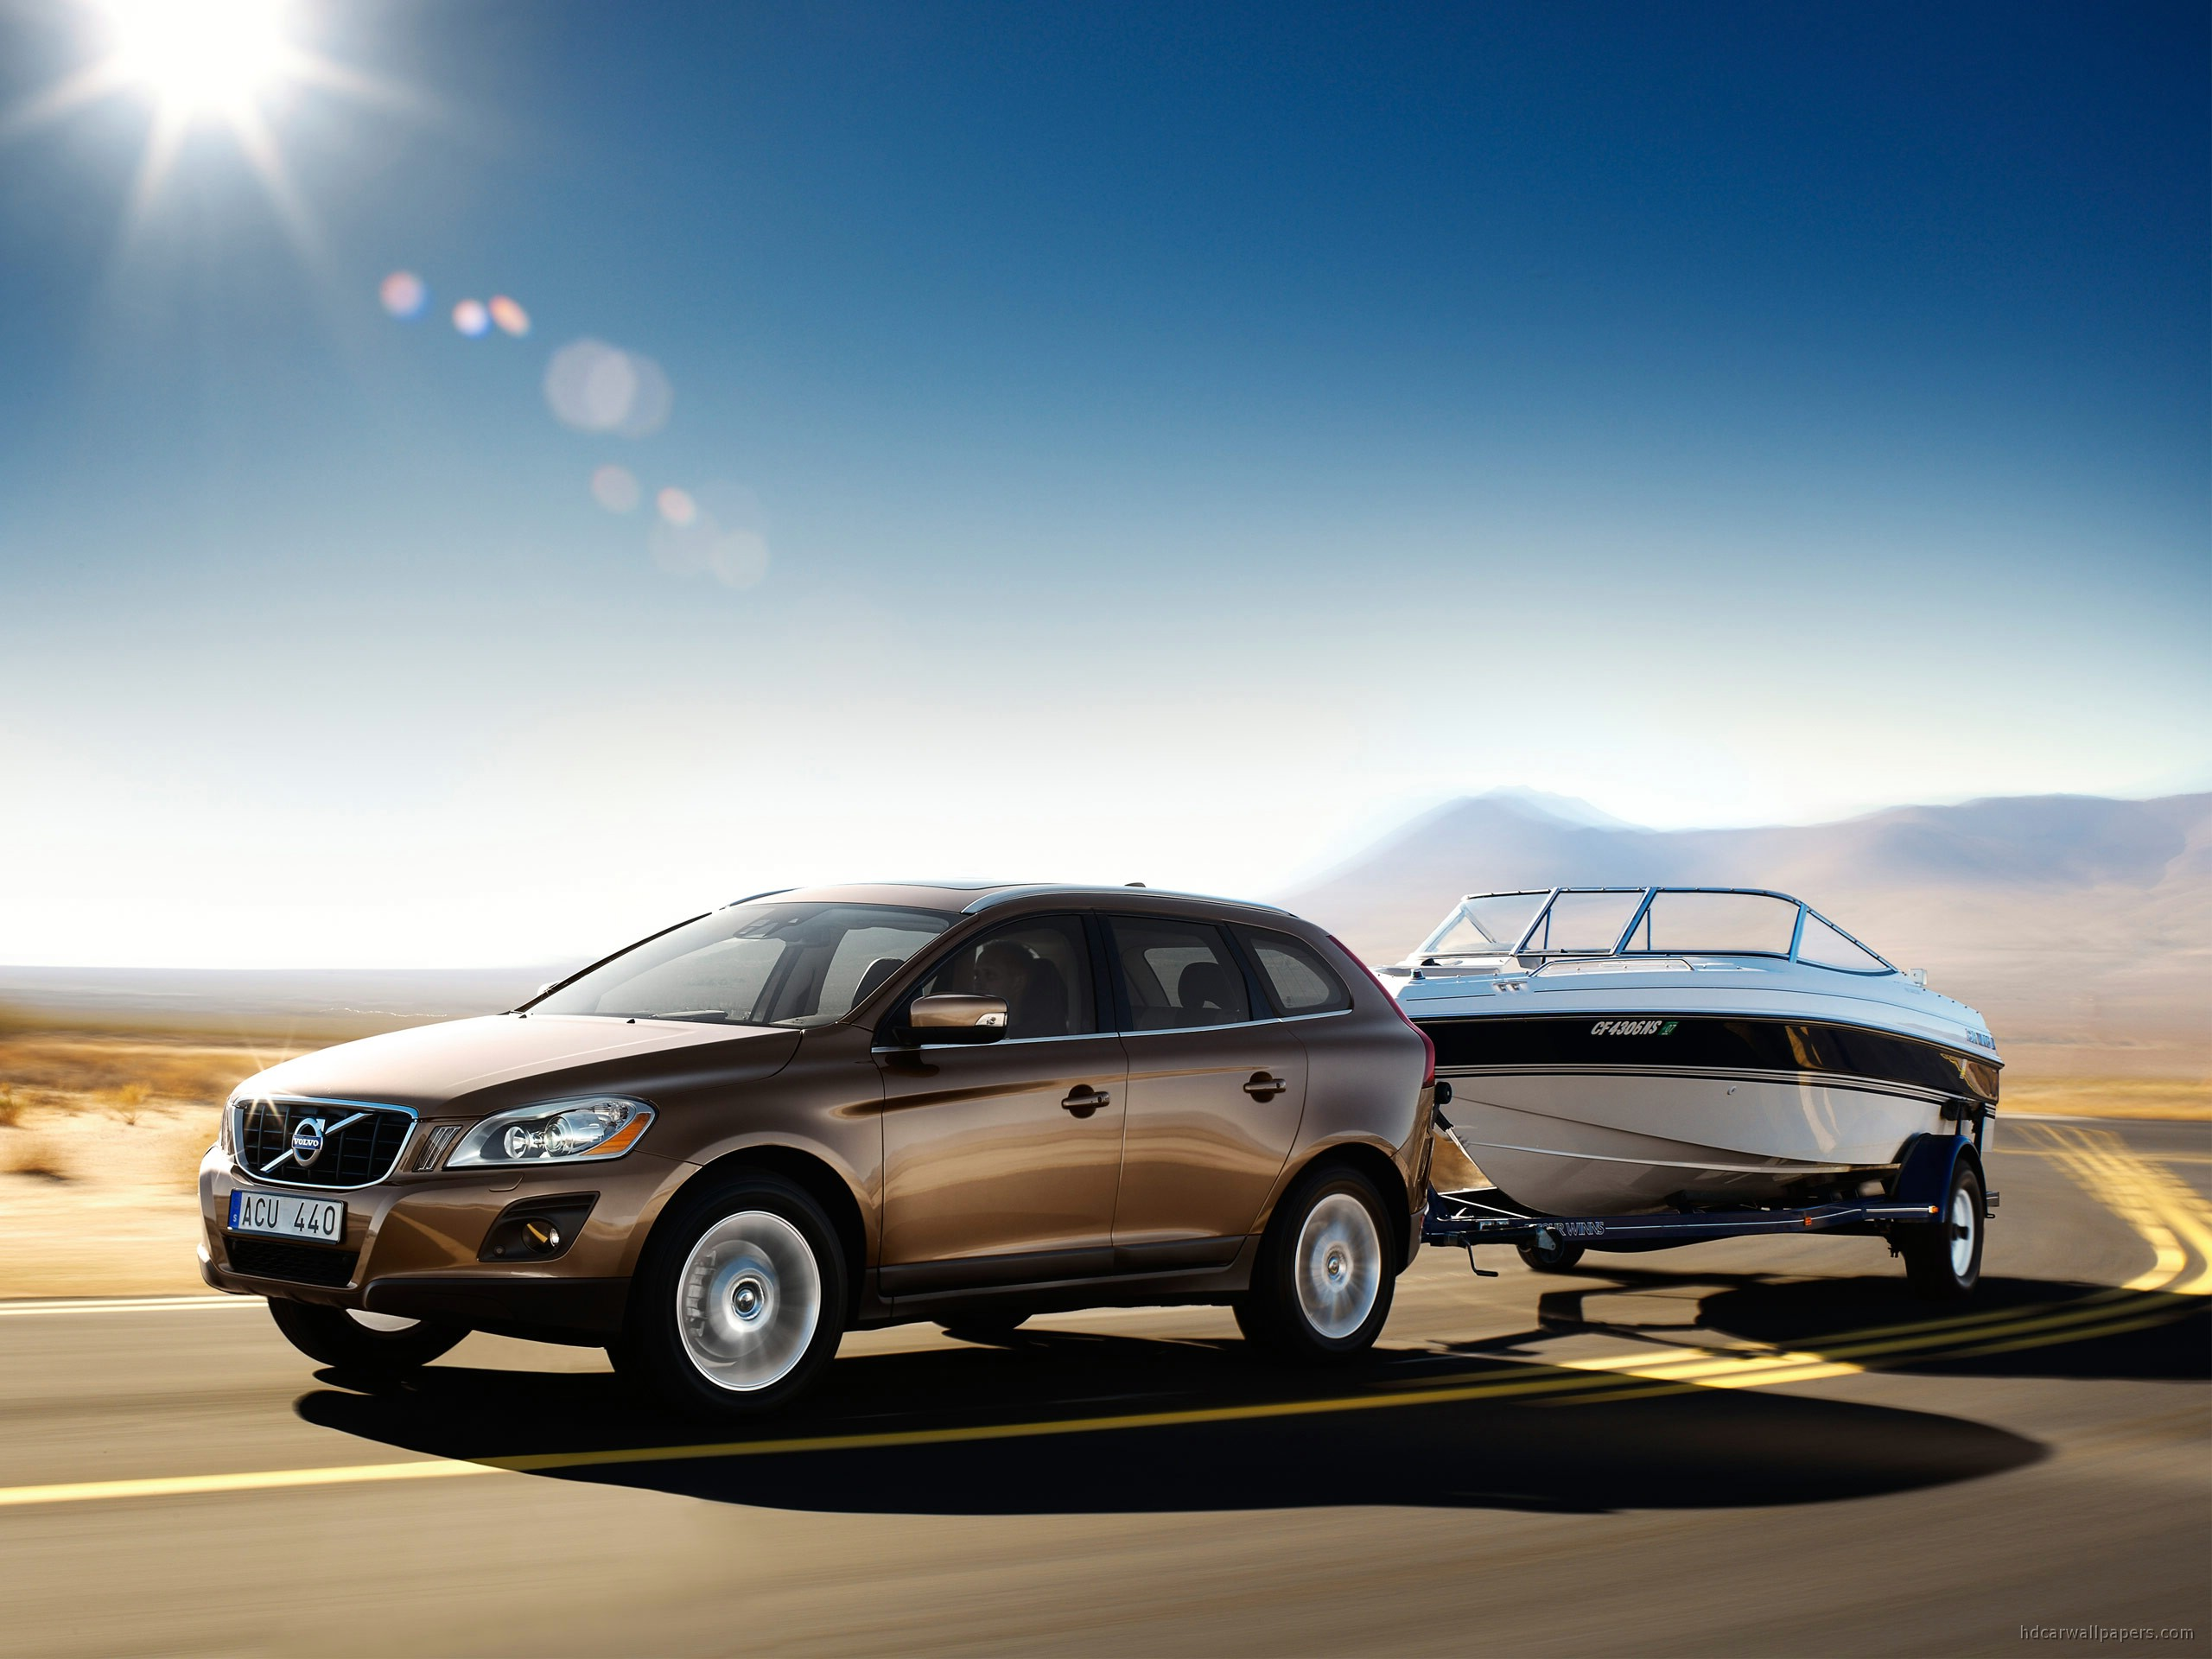 Volvo XC60 New Wallpaper HD Car Wallpapers 2560x1920